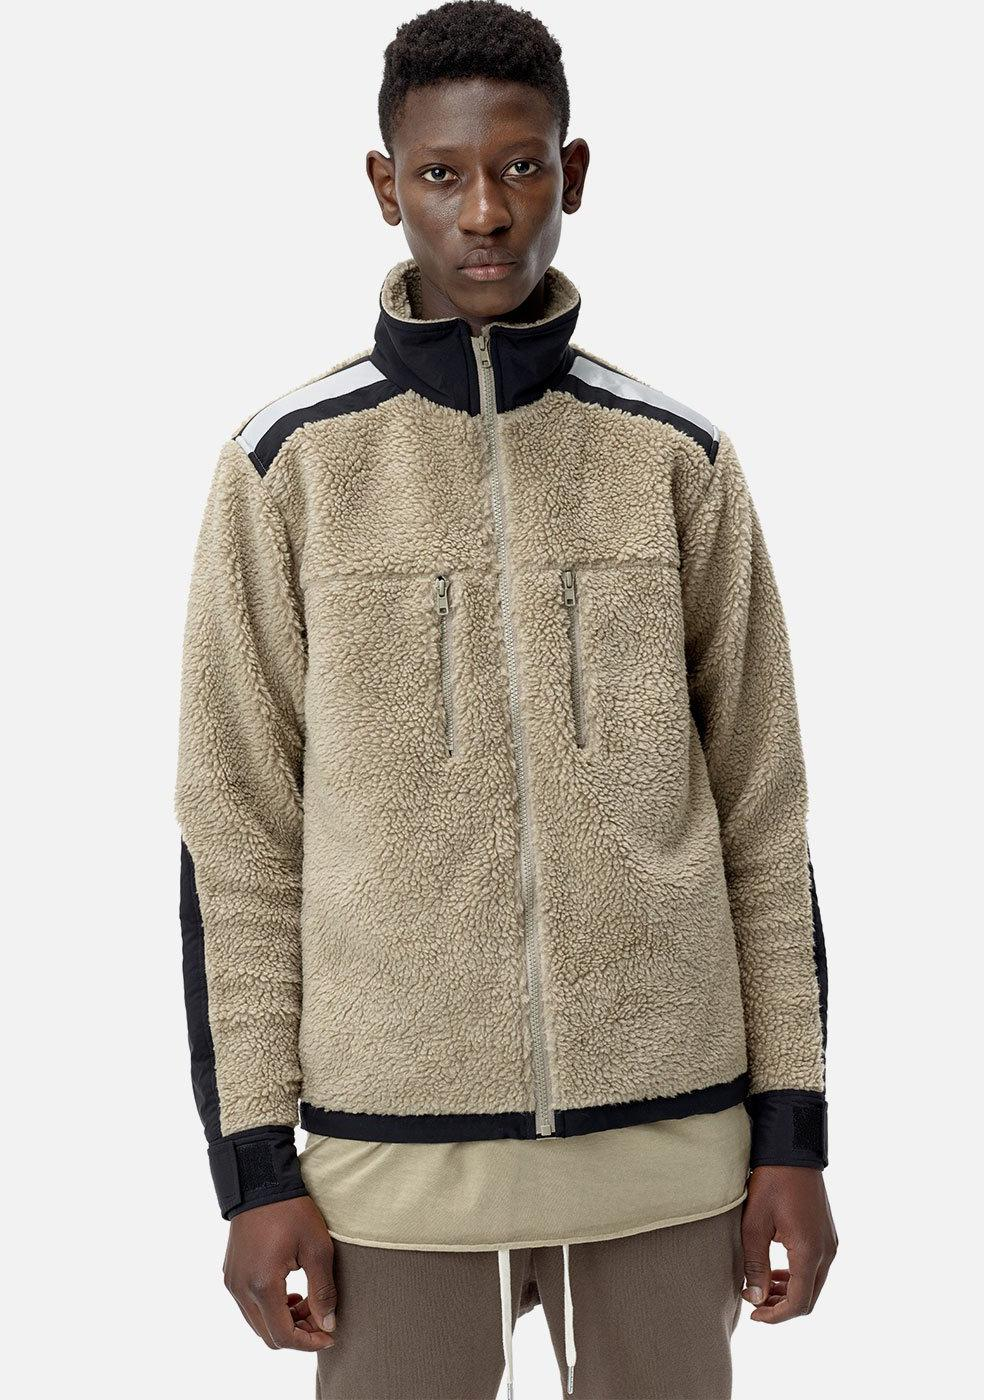 John Elliott product